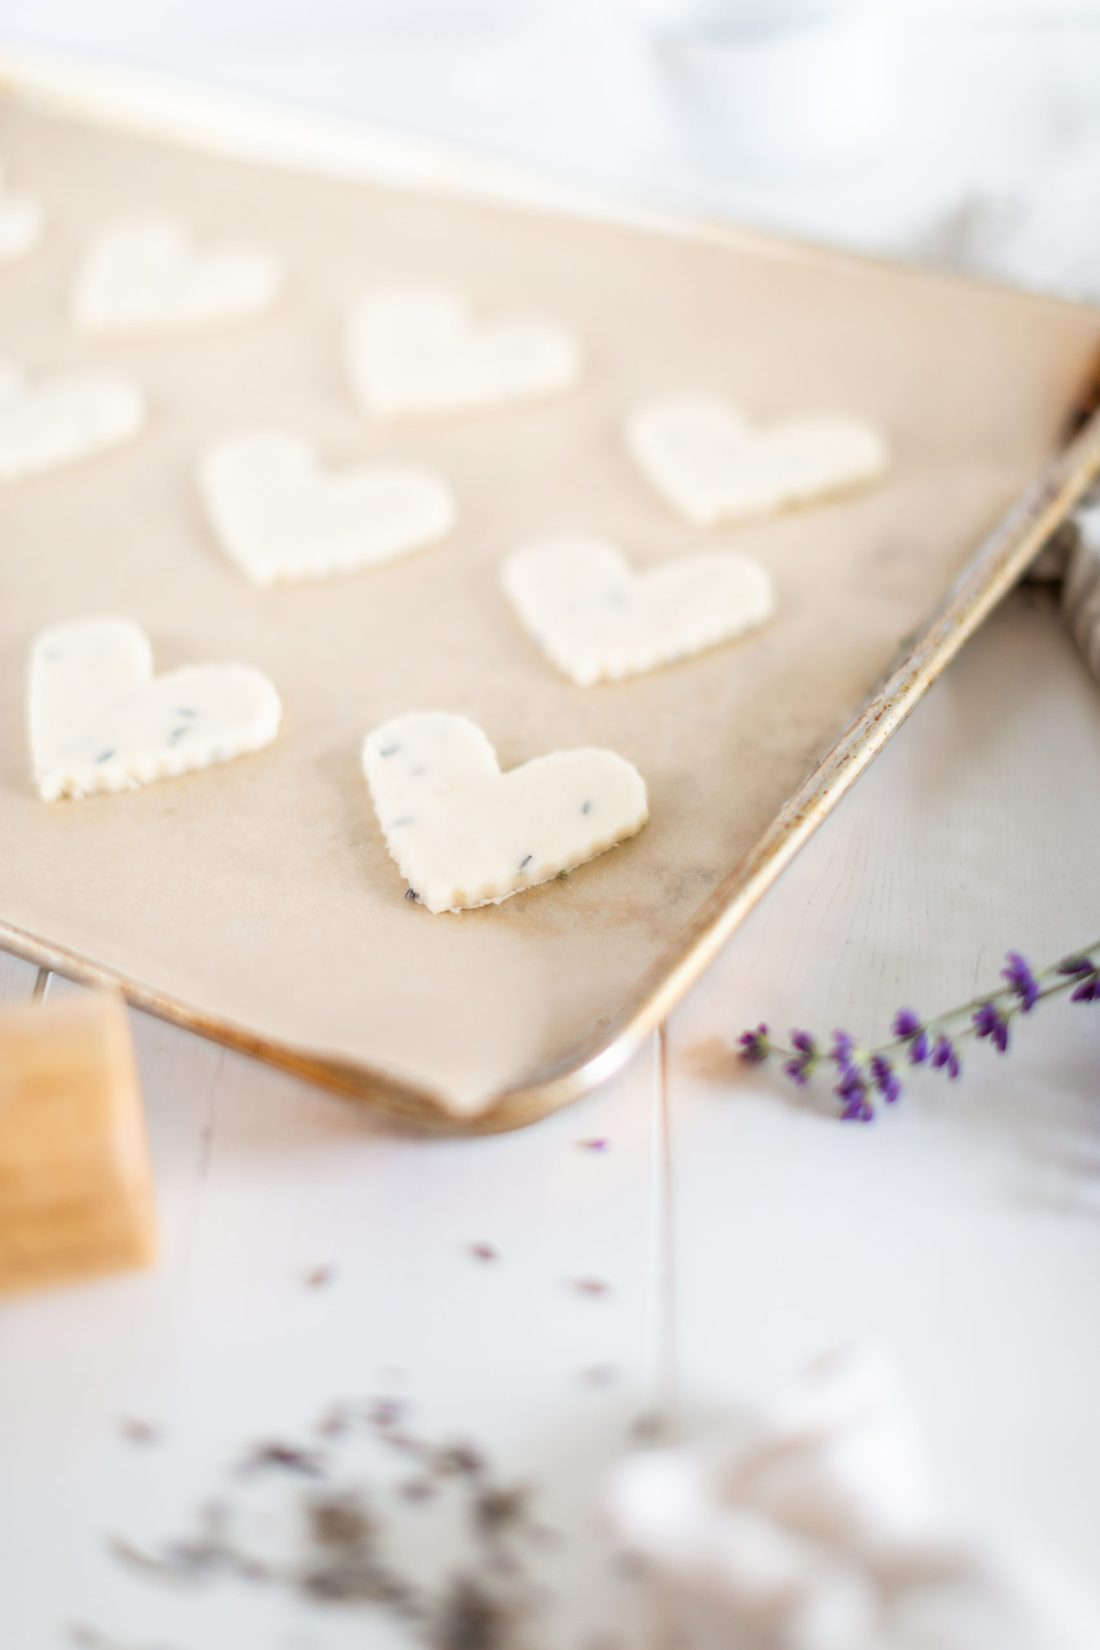 Easy Lavender Shortbread Cookie Recipe